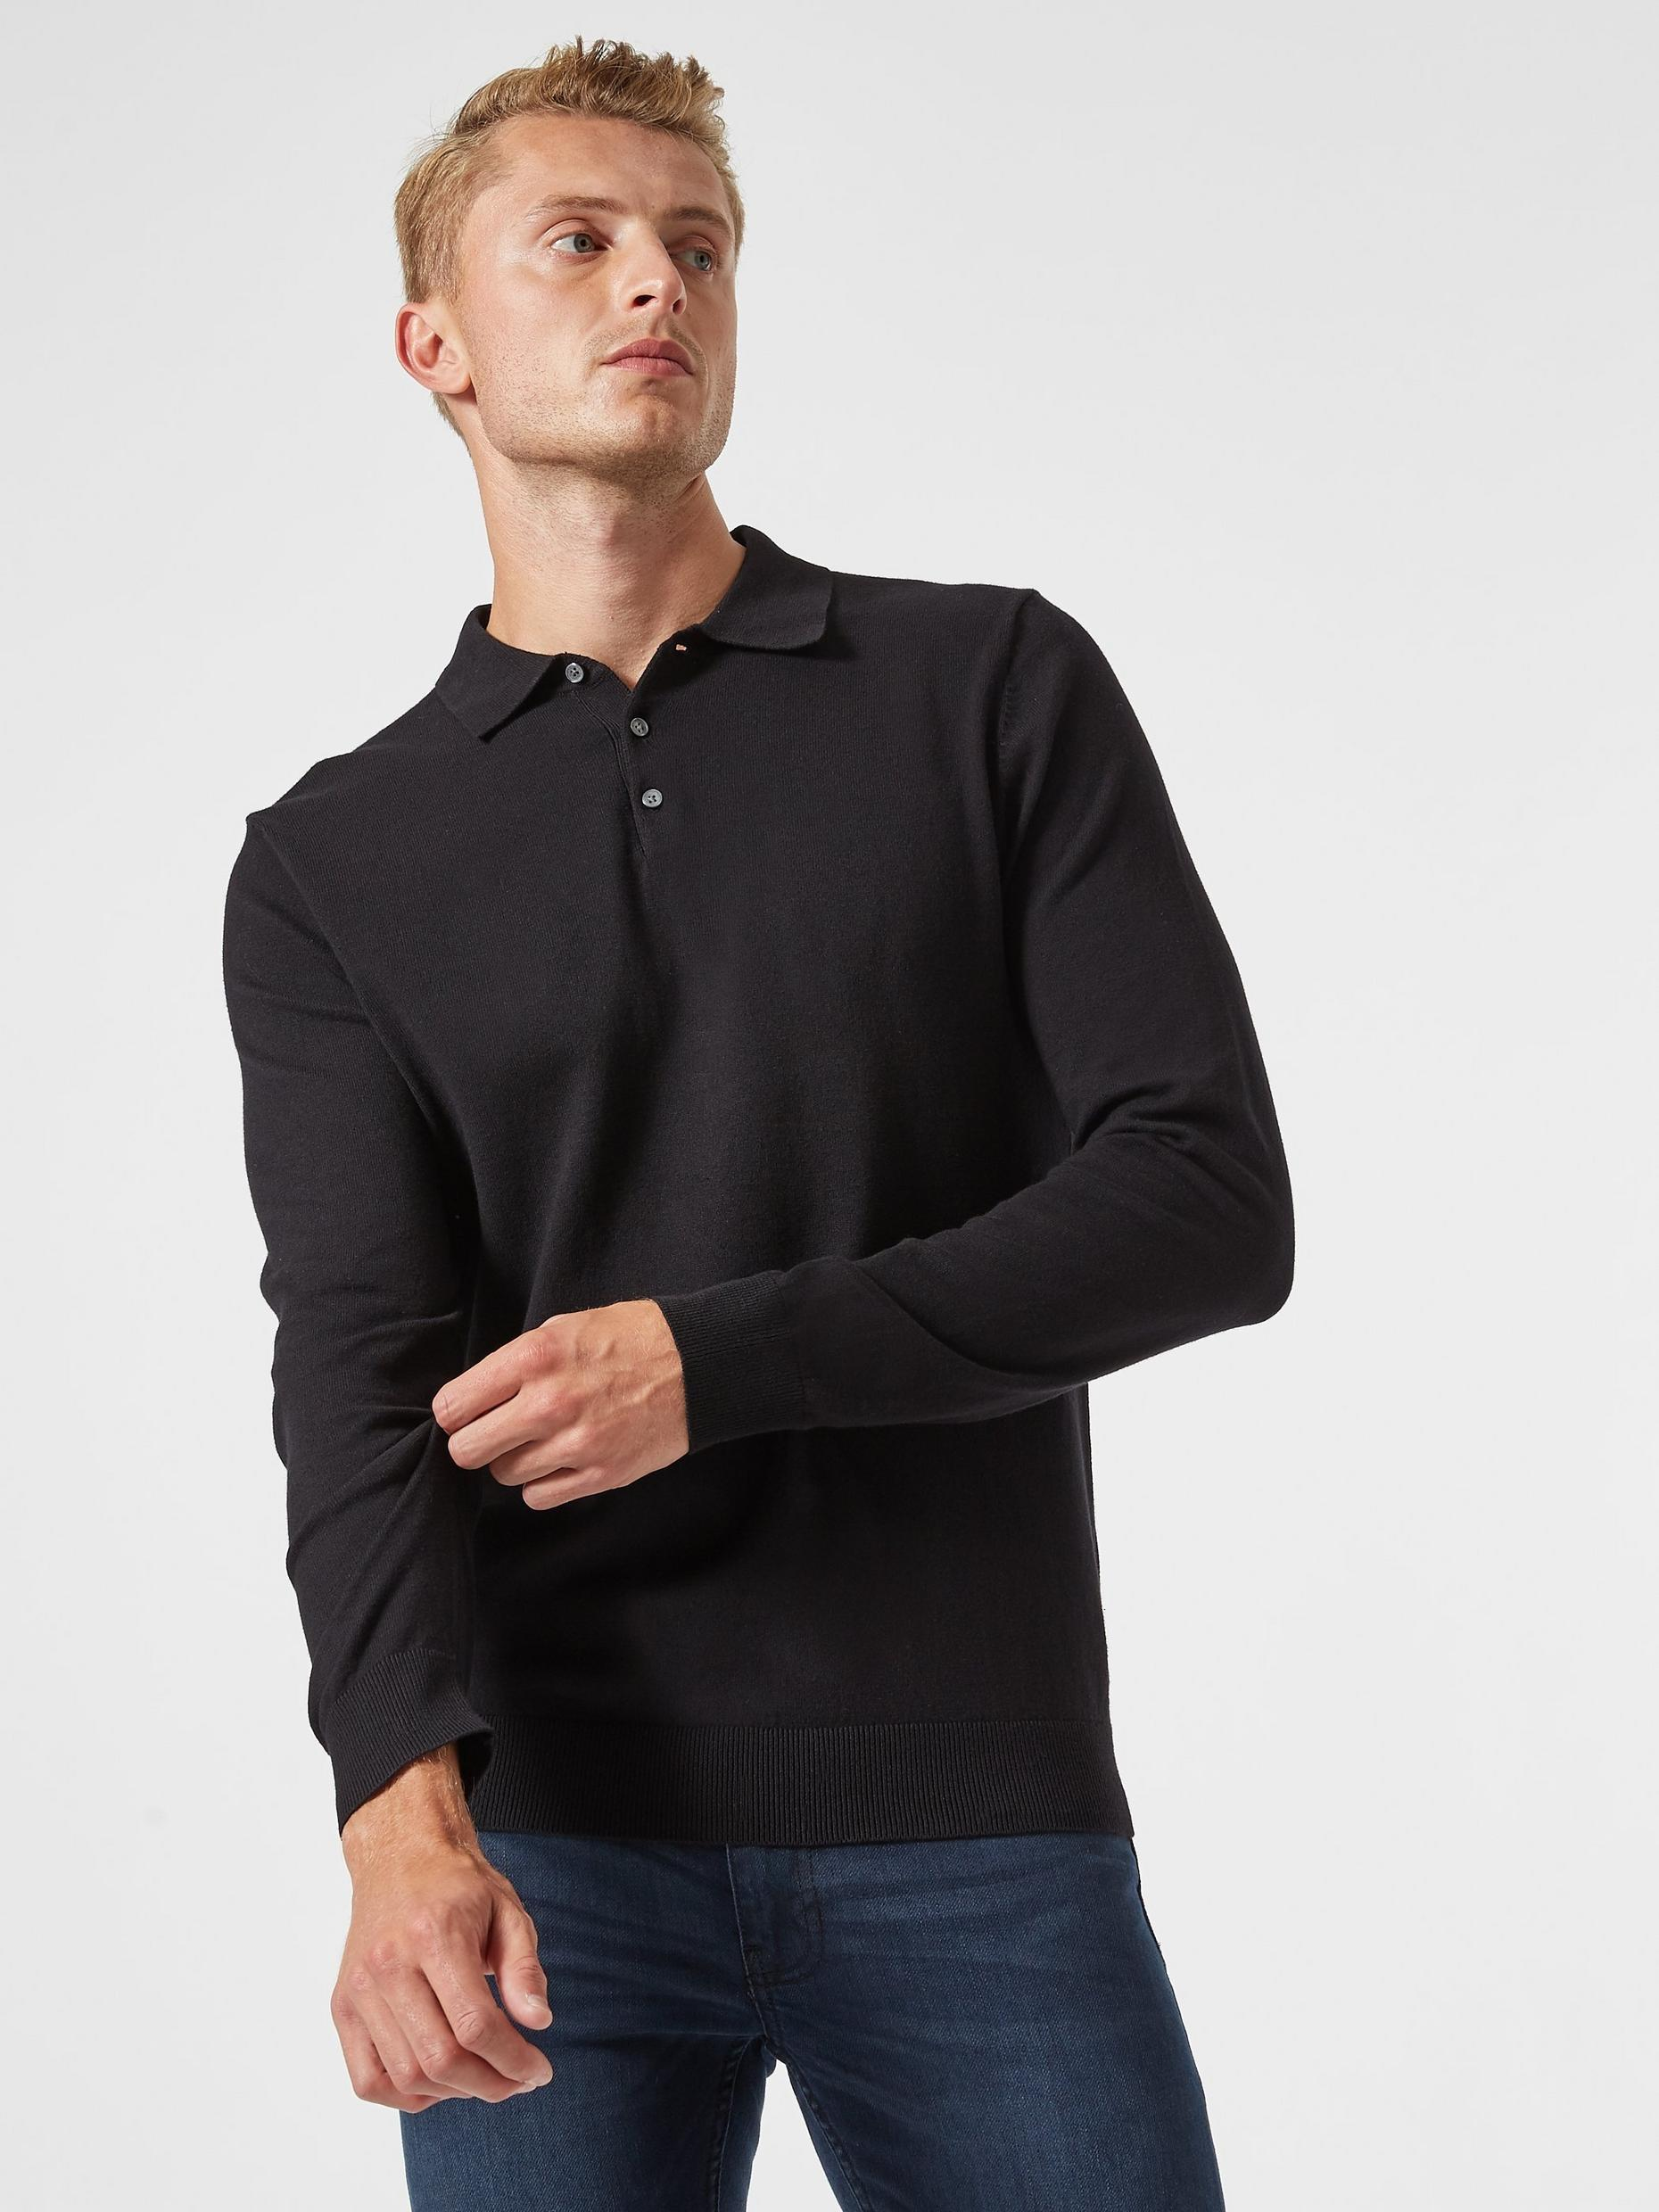 Black Knitted Polo Jumper with Organic Cotton